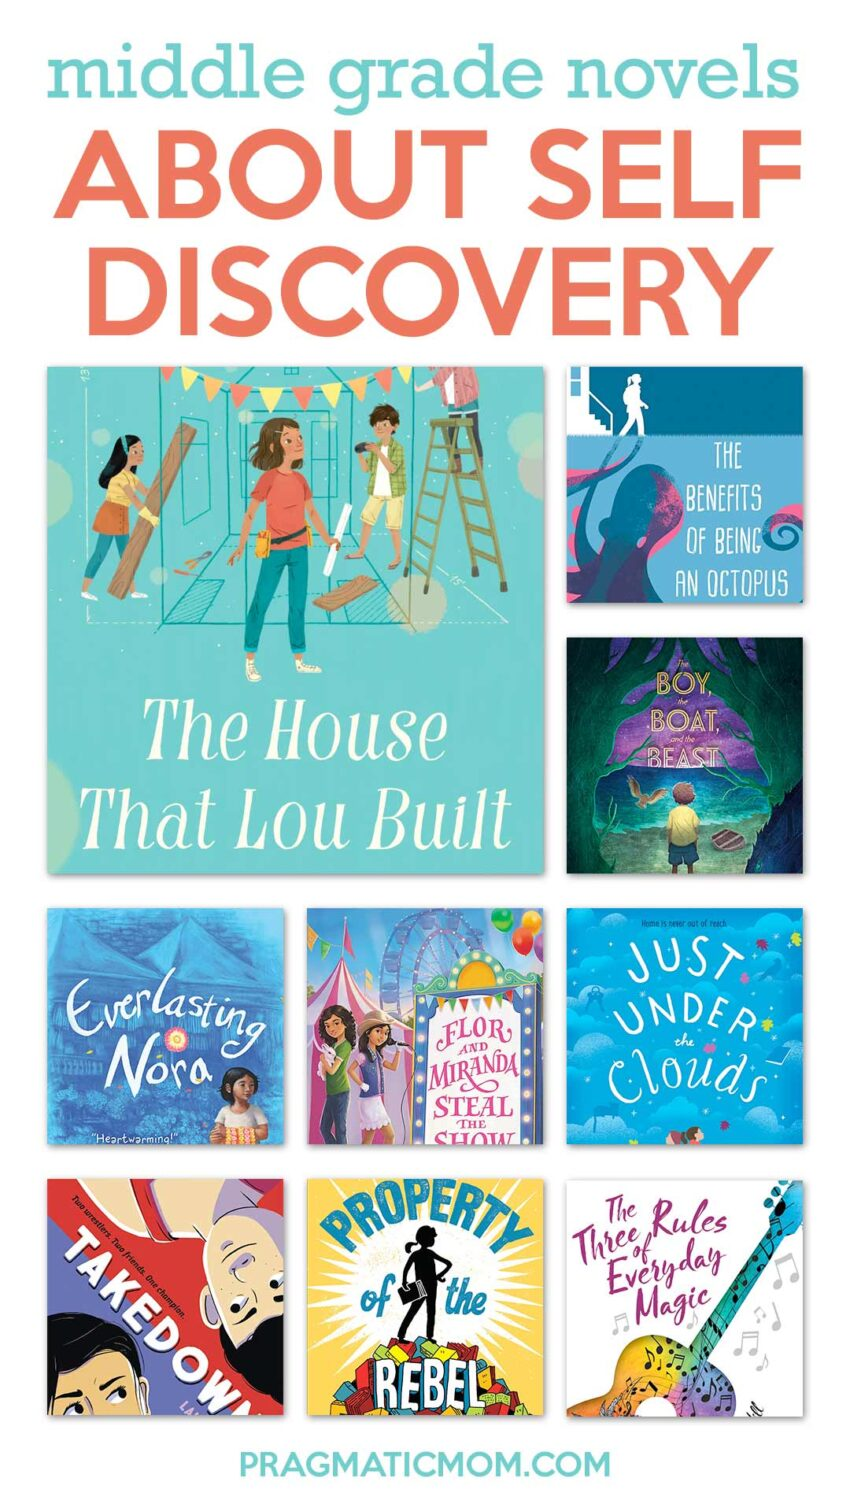 Middle Grade Novels of Self-Discovery